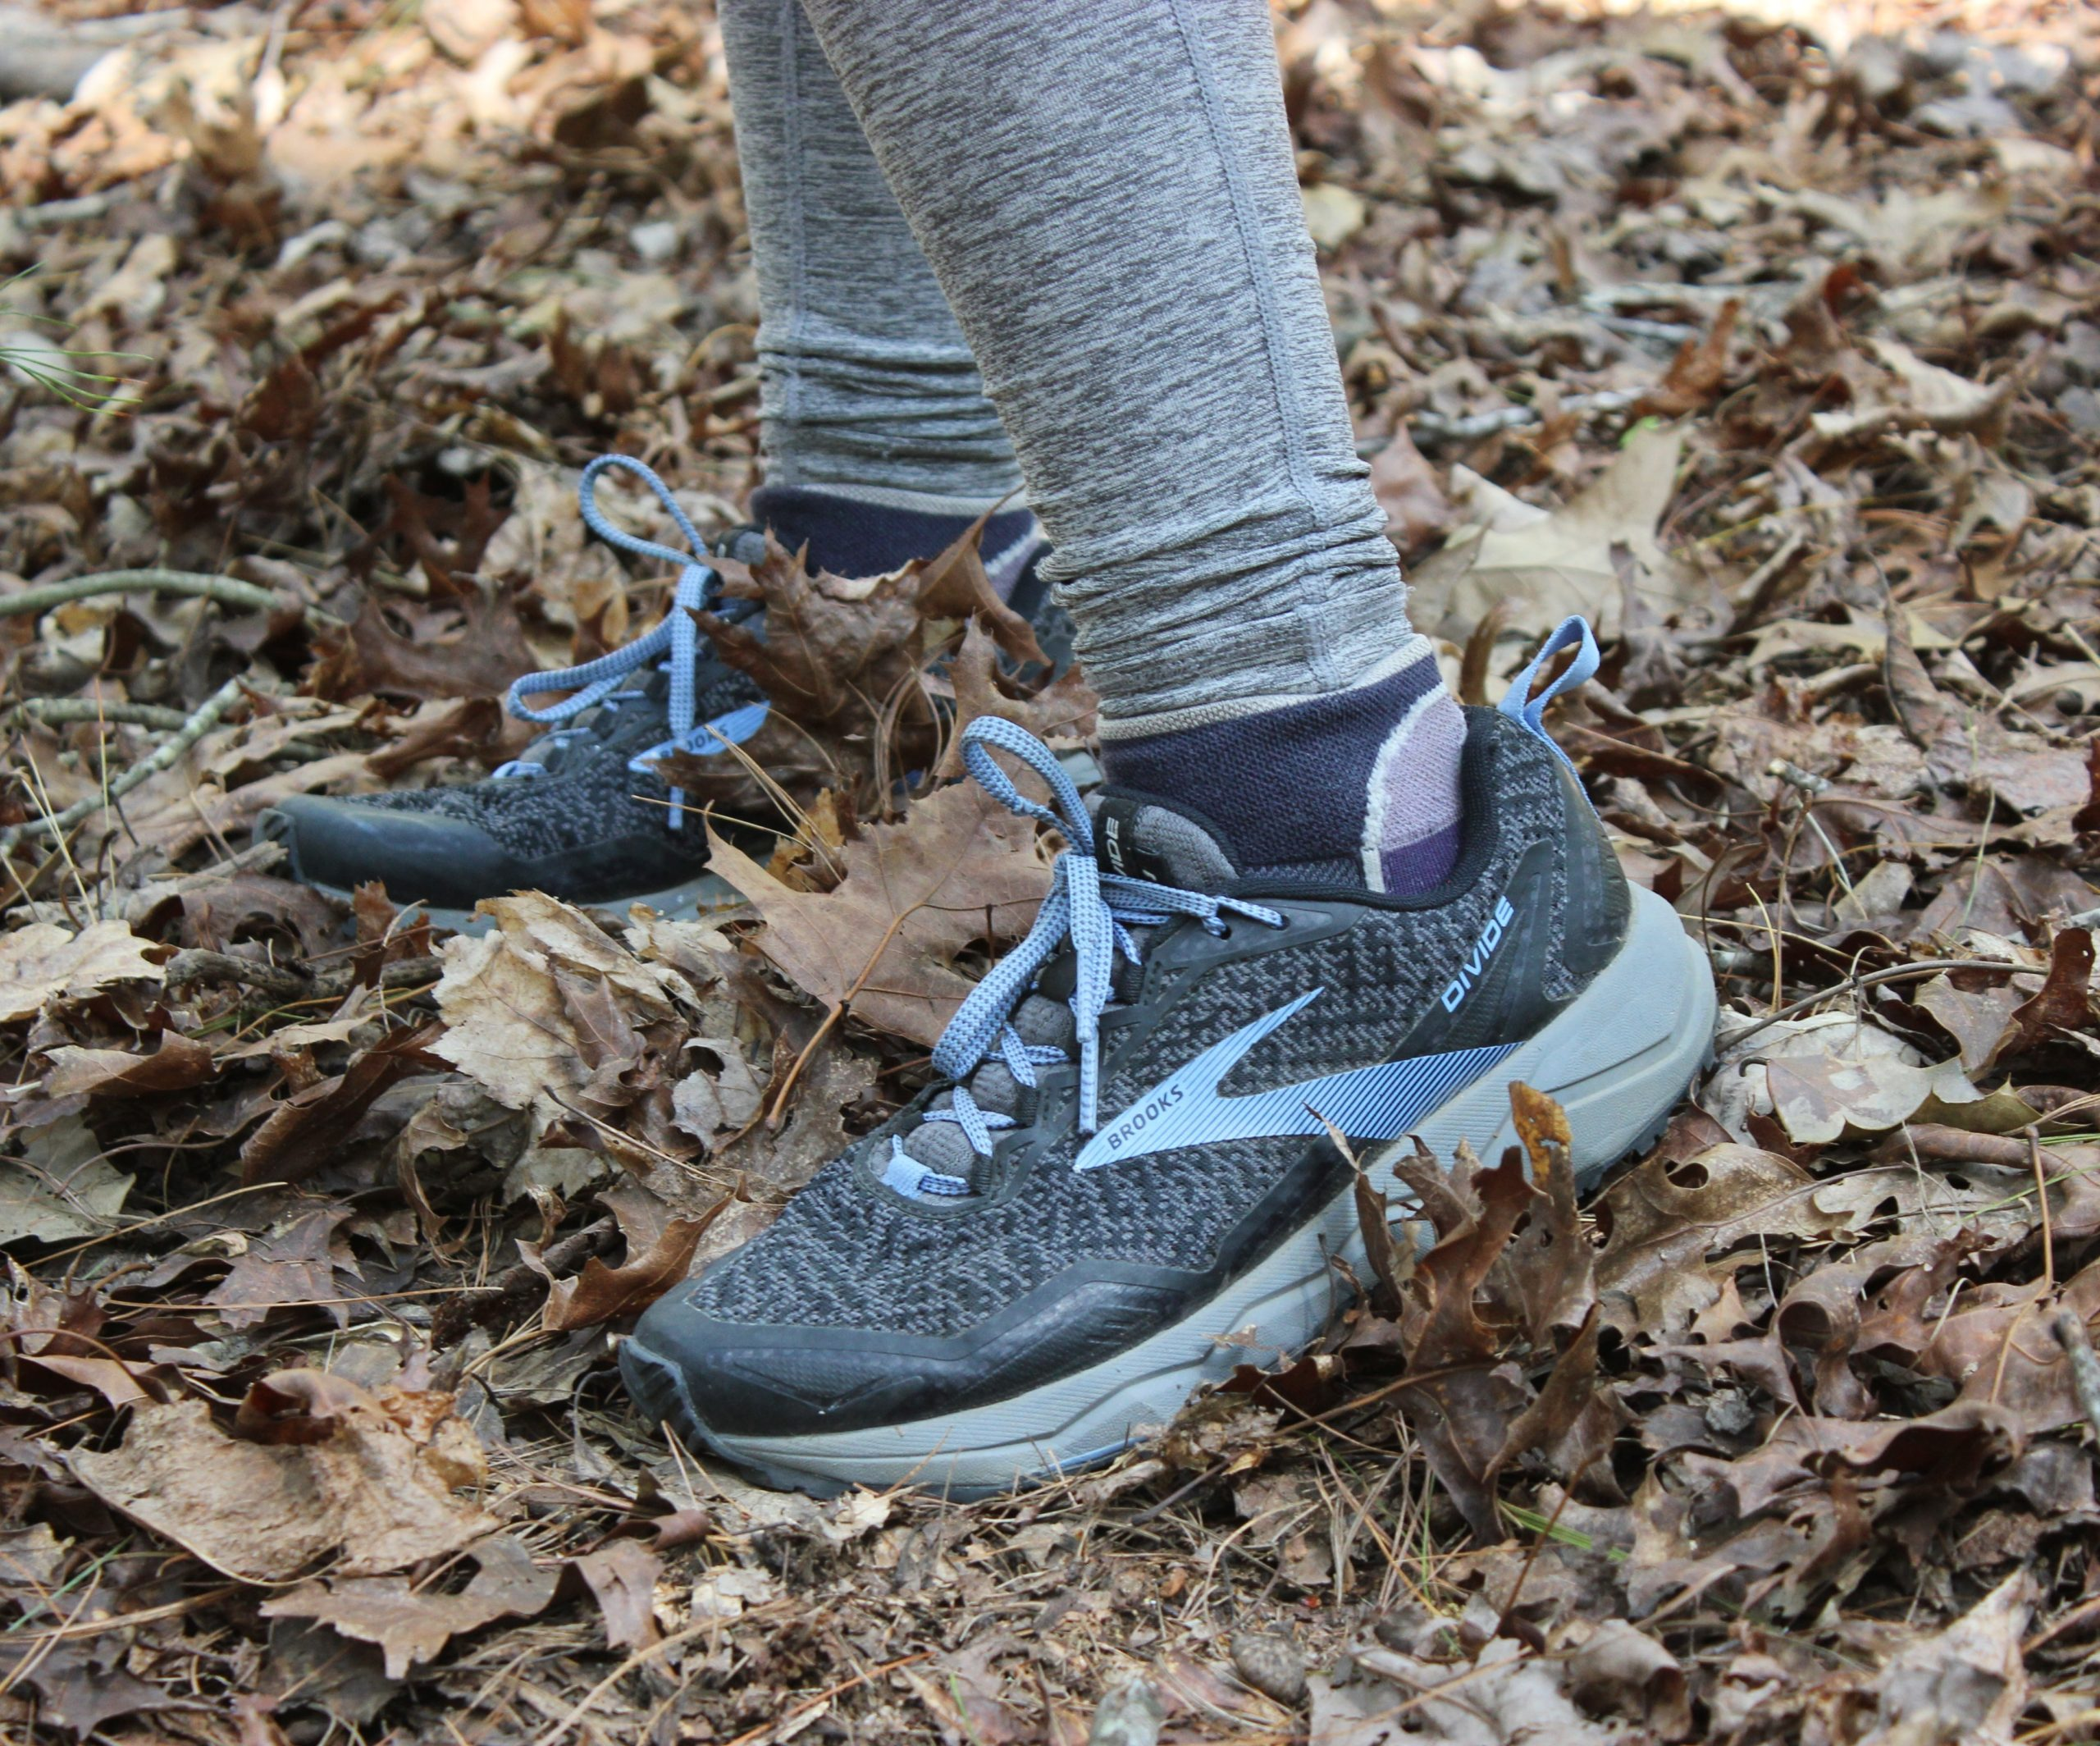 y3 shoes boots Wiggle adidas Women s Terrex Agravic BOA Shoes Trail Shoes